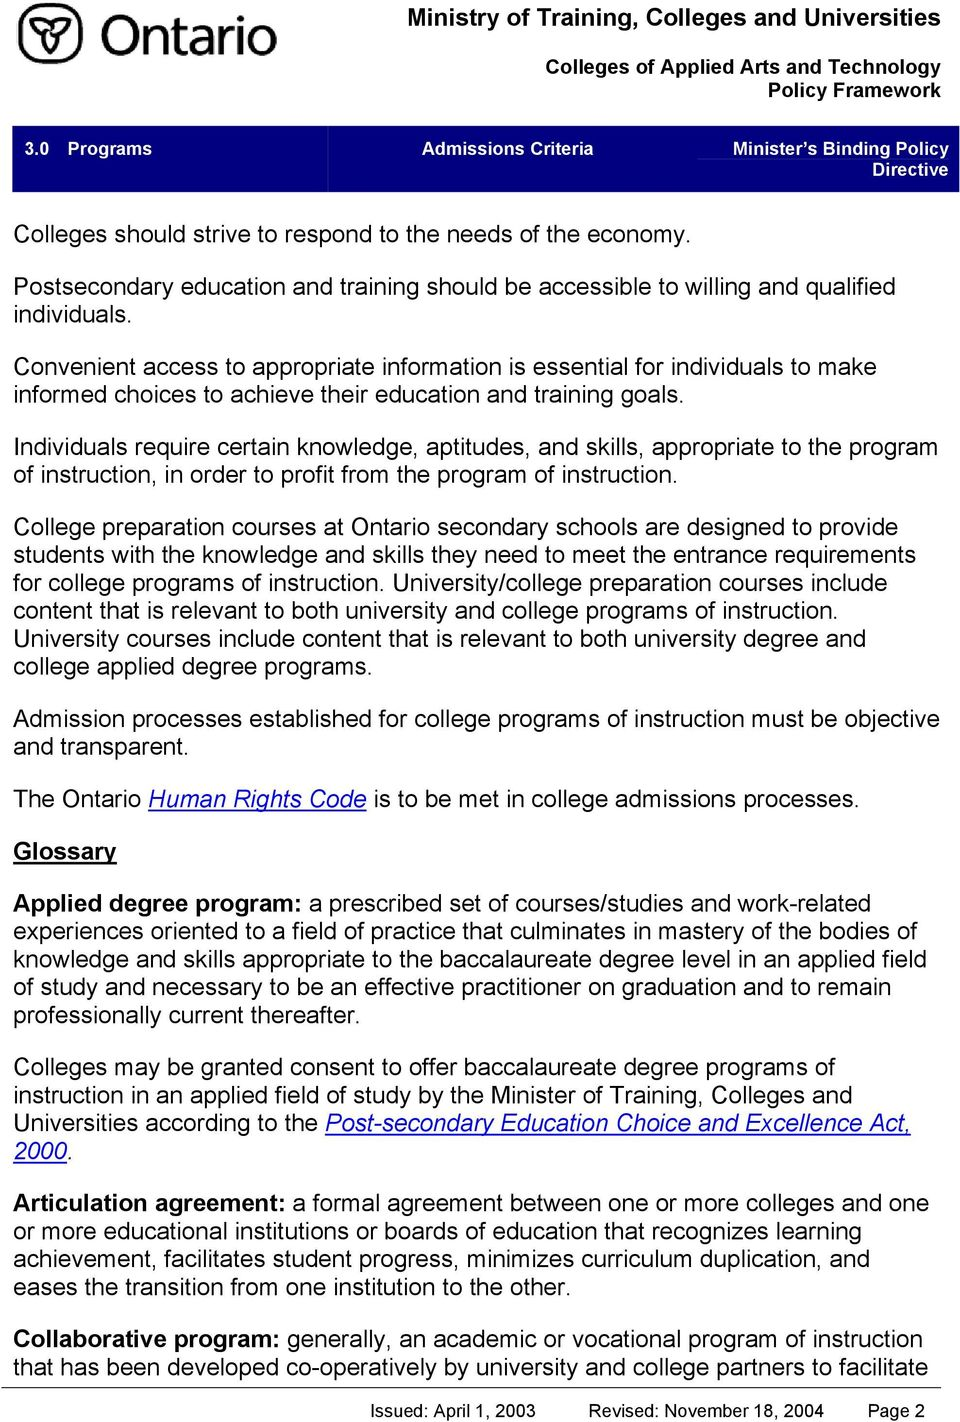 Admissions Criteria Ministry Of Training Colleges And Universities Colleges Of Applied Arts And Technology Policy Framework Pdf Free Download